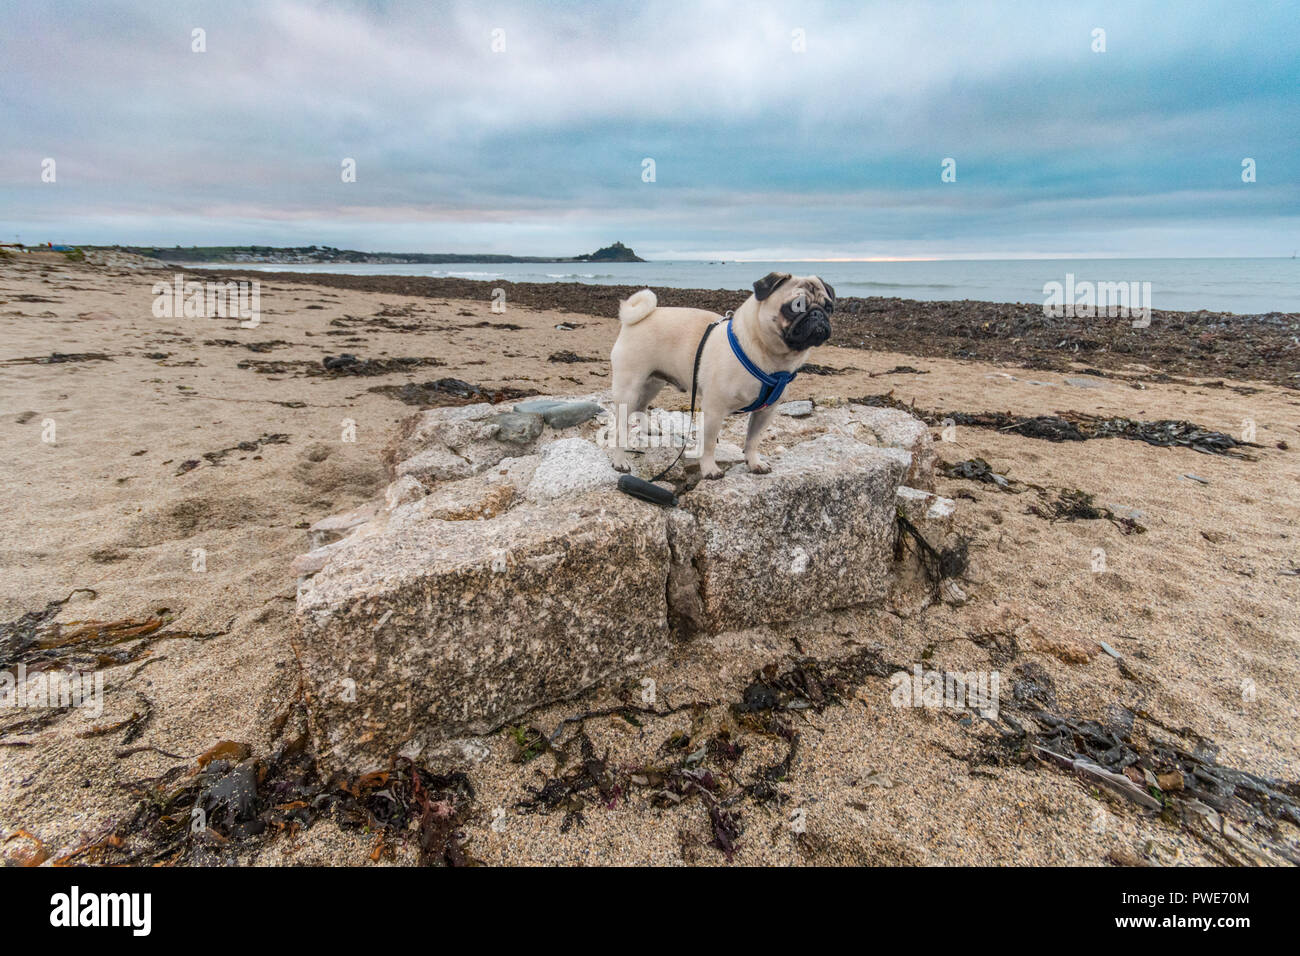 Longrock, Cornwall, UK. 16th October 2018. UK Weather. In the aftermath of Storm Callum part of a granite wall was found on the beach at Longrock. Estimated to weigh over 8 tons, it shows the power of the storm and waves that pounded the Cornish coast. Standing onthe rock is Titan the pug out for his morning walk at sunrise. Credit: Simon Maycock/Alamy Live News Stock Photo